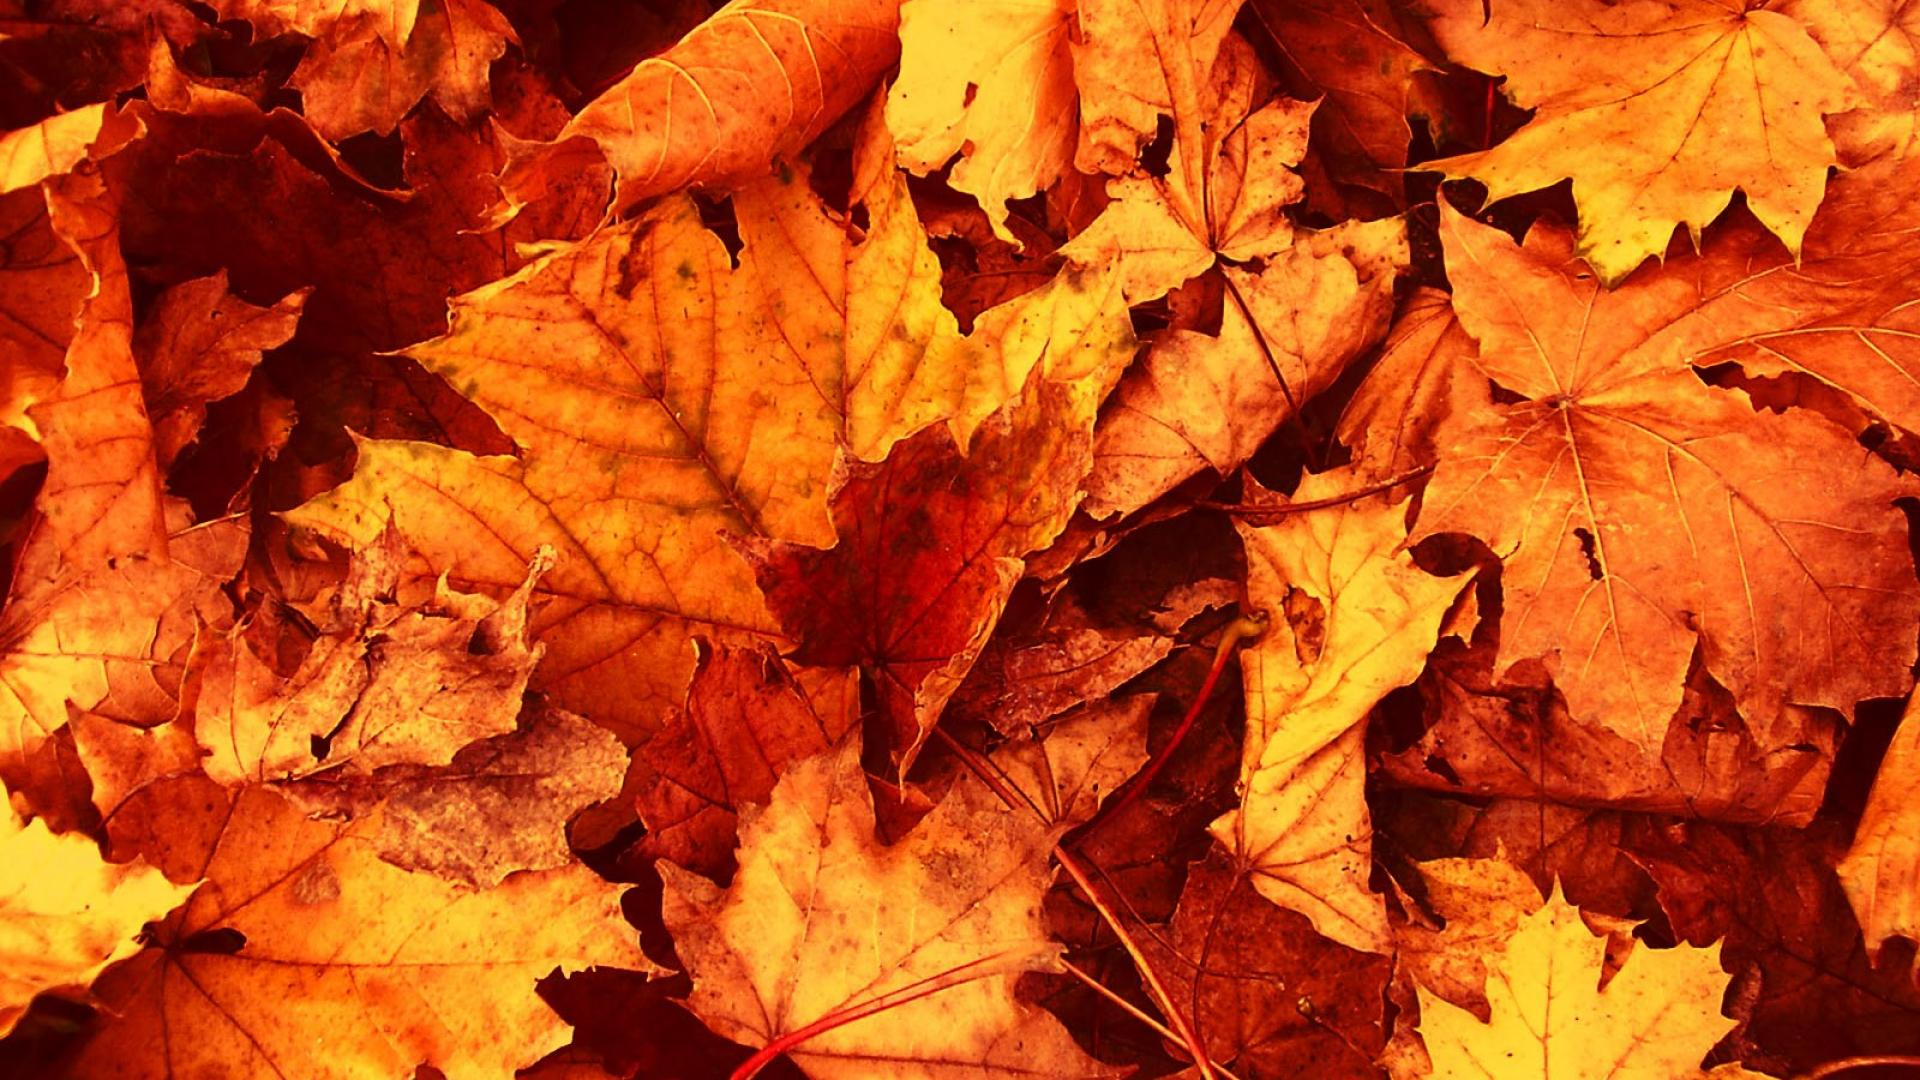 Fall Desktop Wallpaper Themes Autumn Leaves Wallpaper Awesome Natural Autumn Leaves